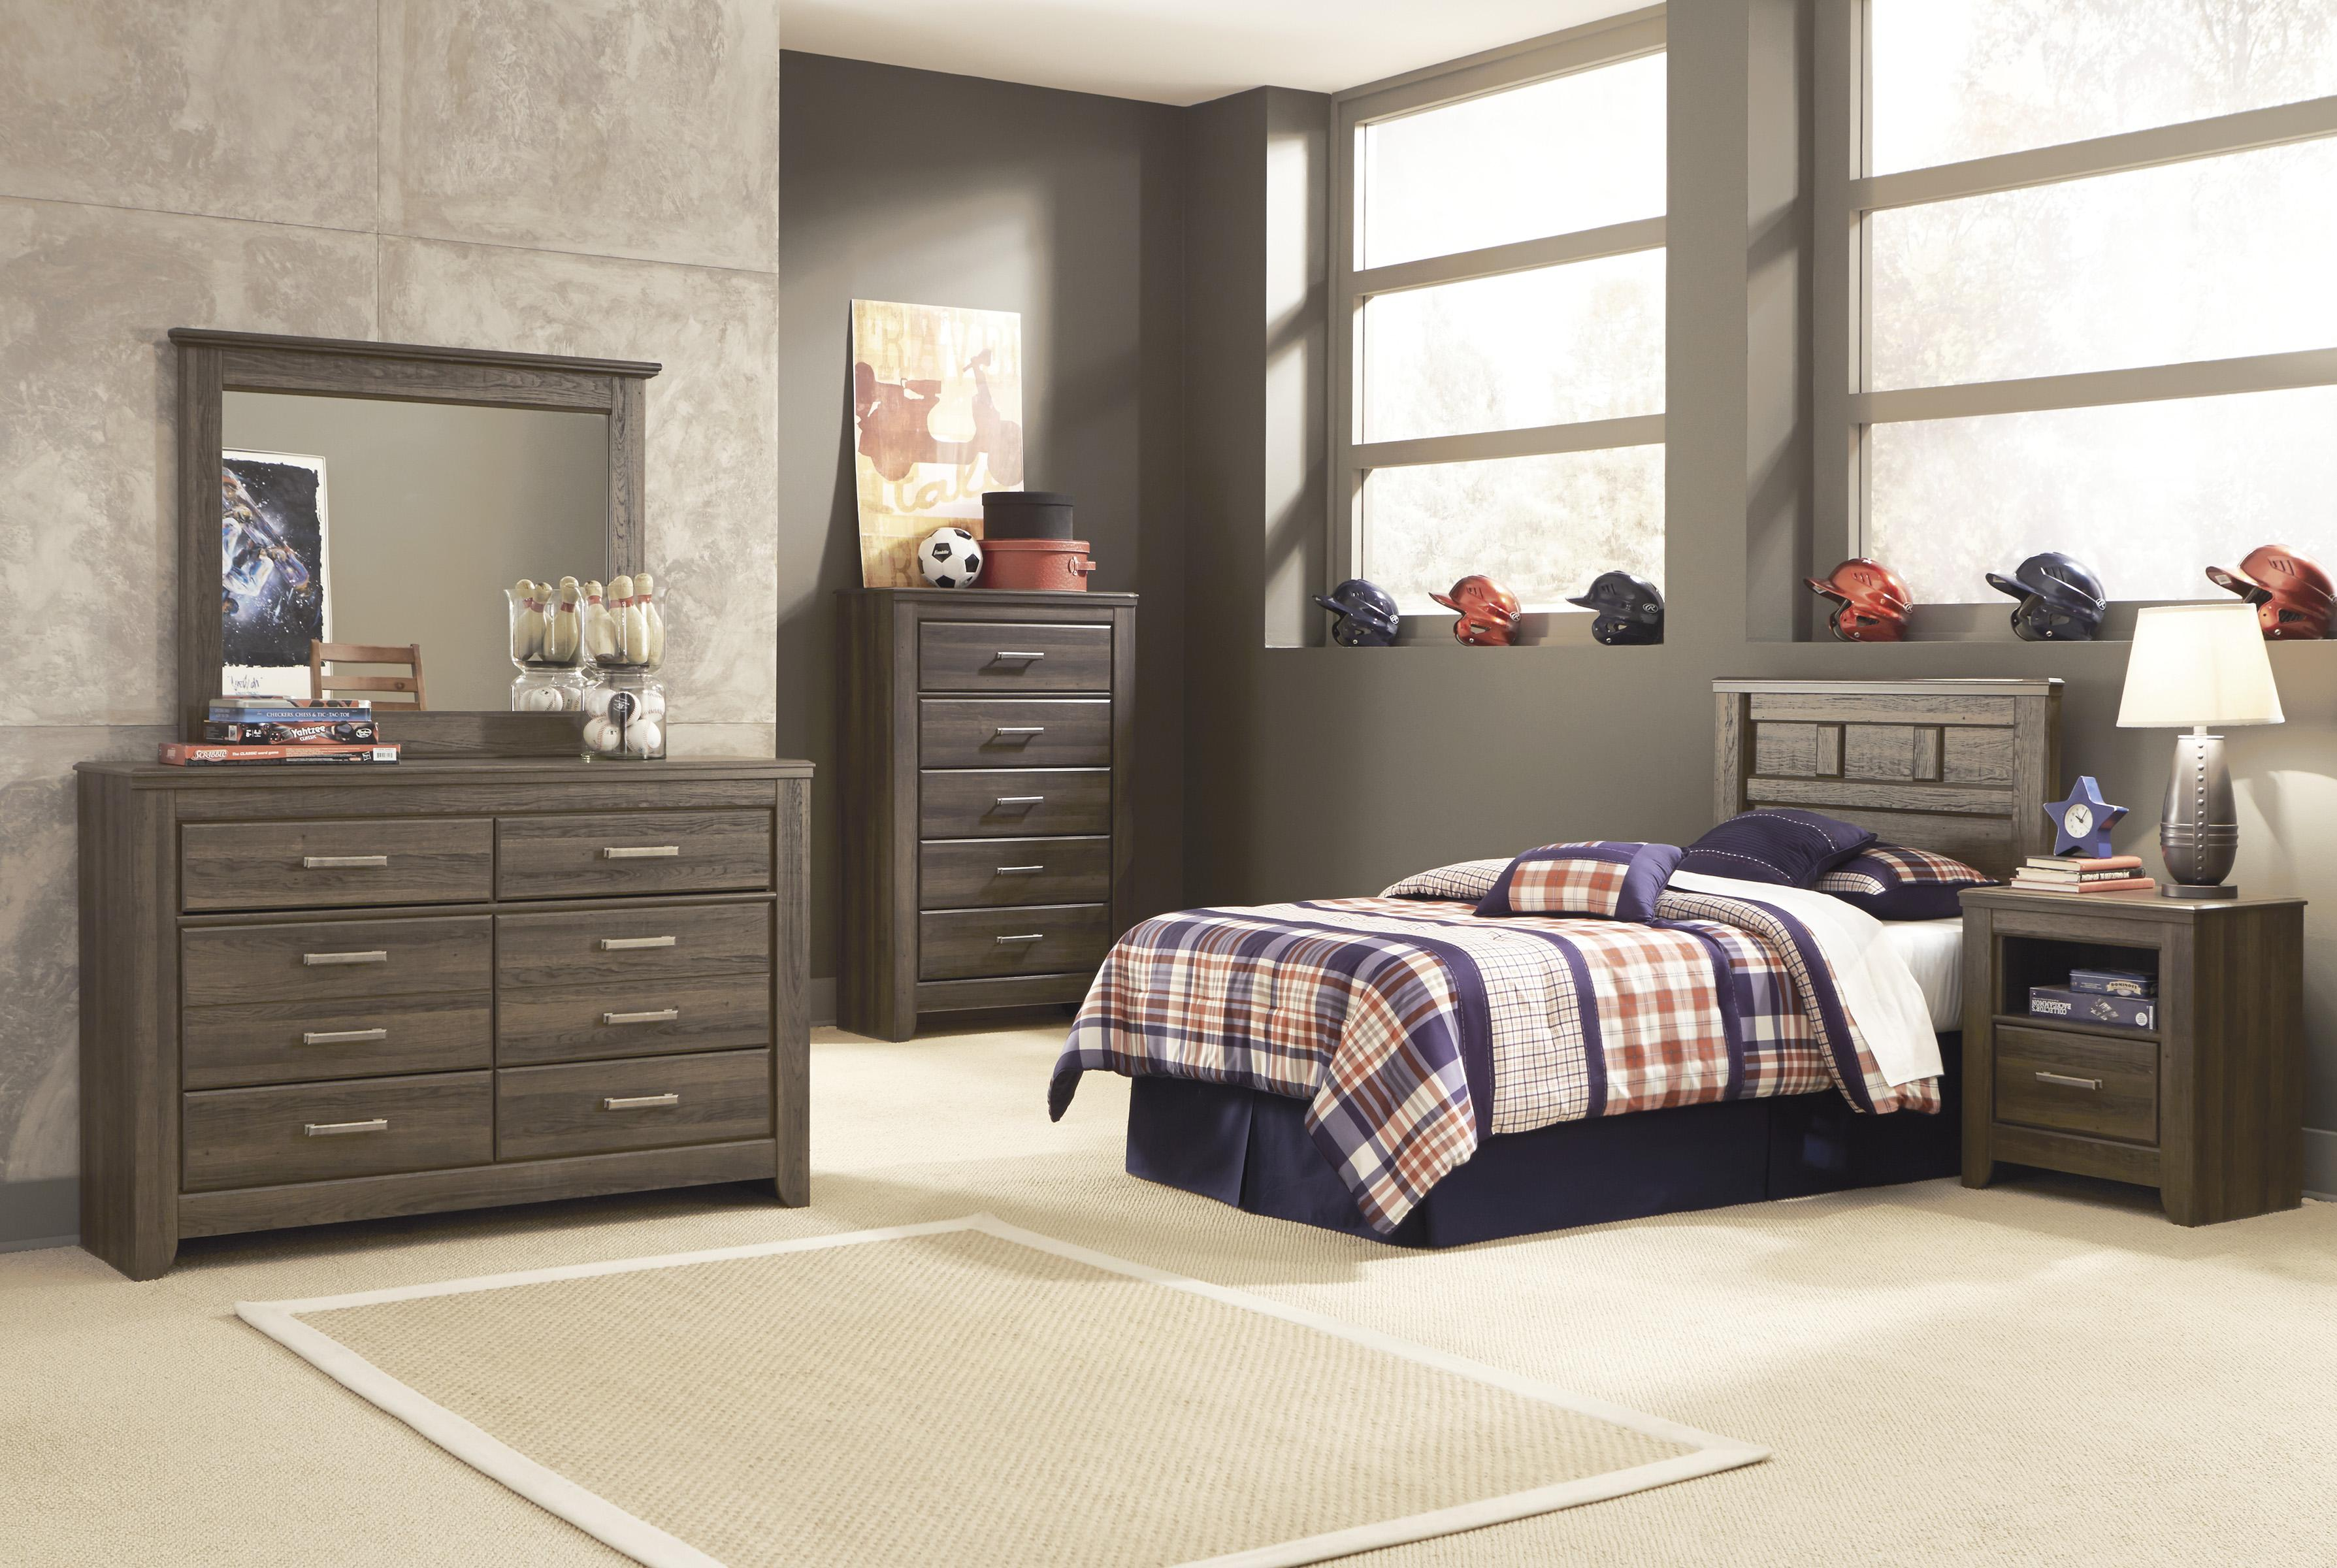 Signature Design by Ashley Juararo Twin Bedroom Group - Item Number: B251 T Bedroom Group 3